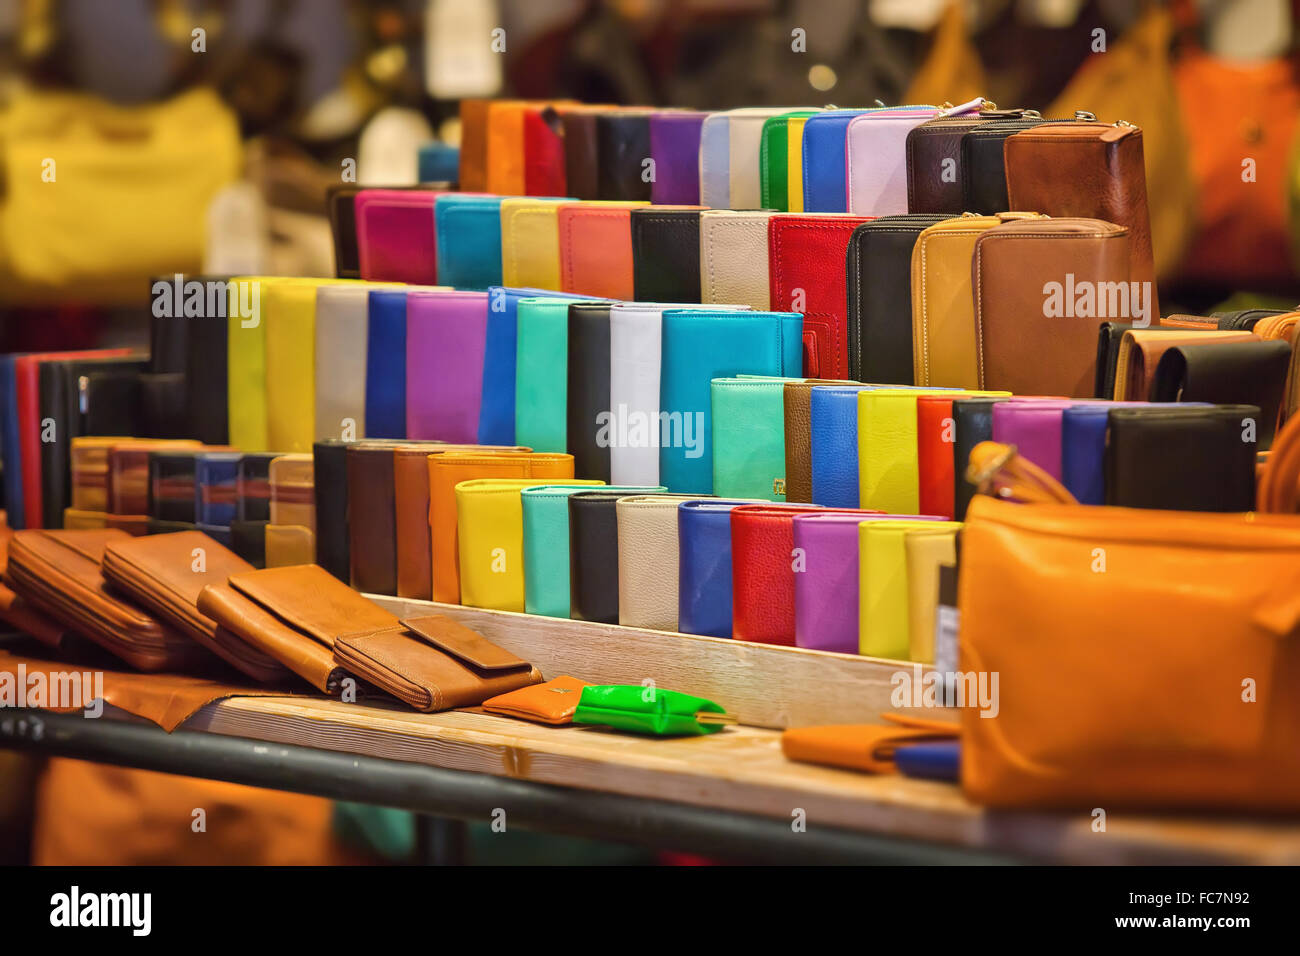 Many kinds of purses in different colors - Stock Image